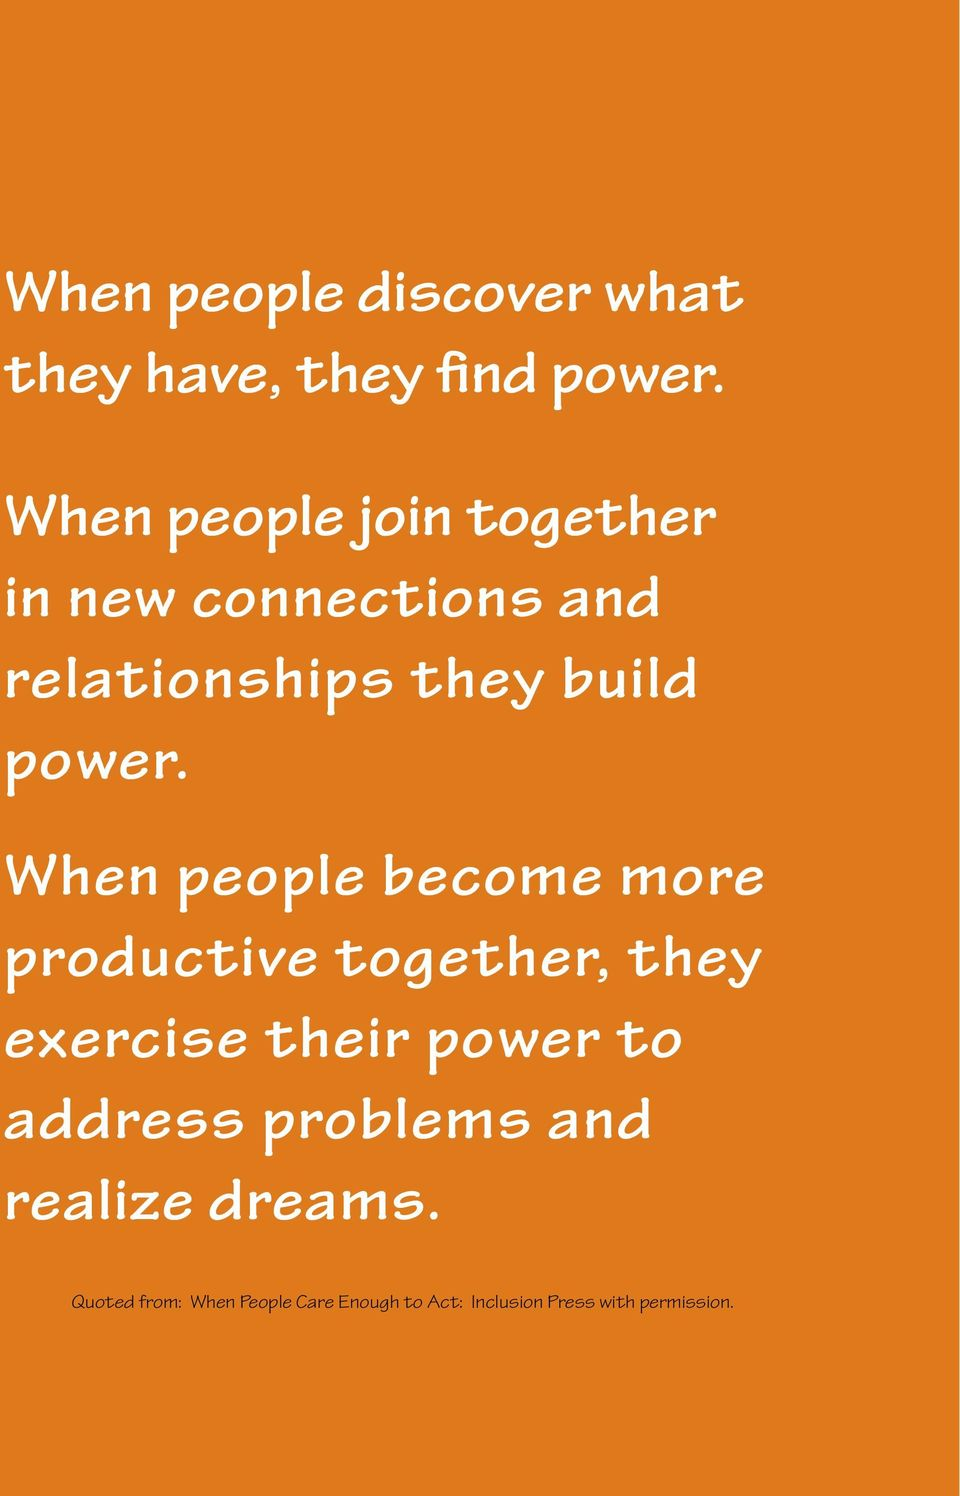 When people become more productive together, they exercise their power to address